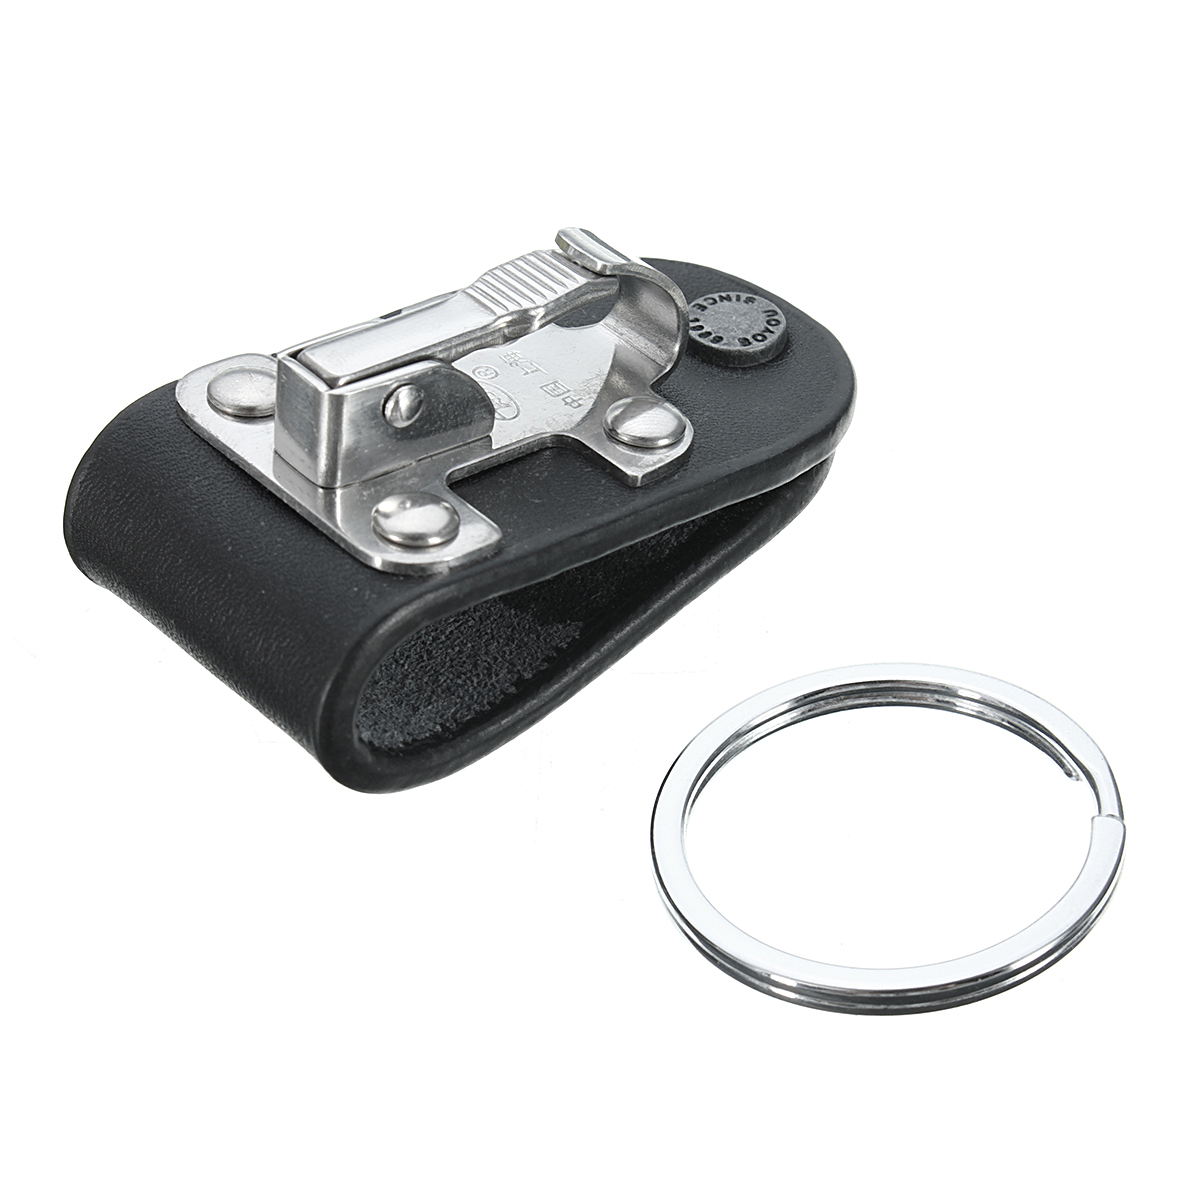 Quick Release Belt Clip Ring Holder Detachable Stainless Steel Black Leather Key Chain Keyring